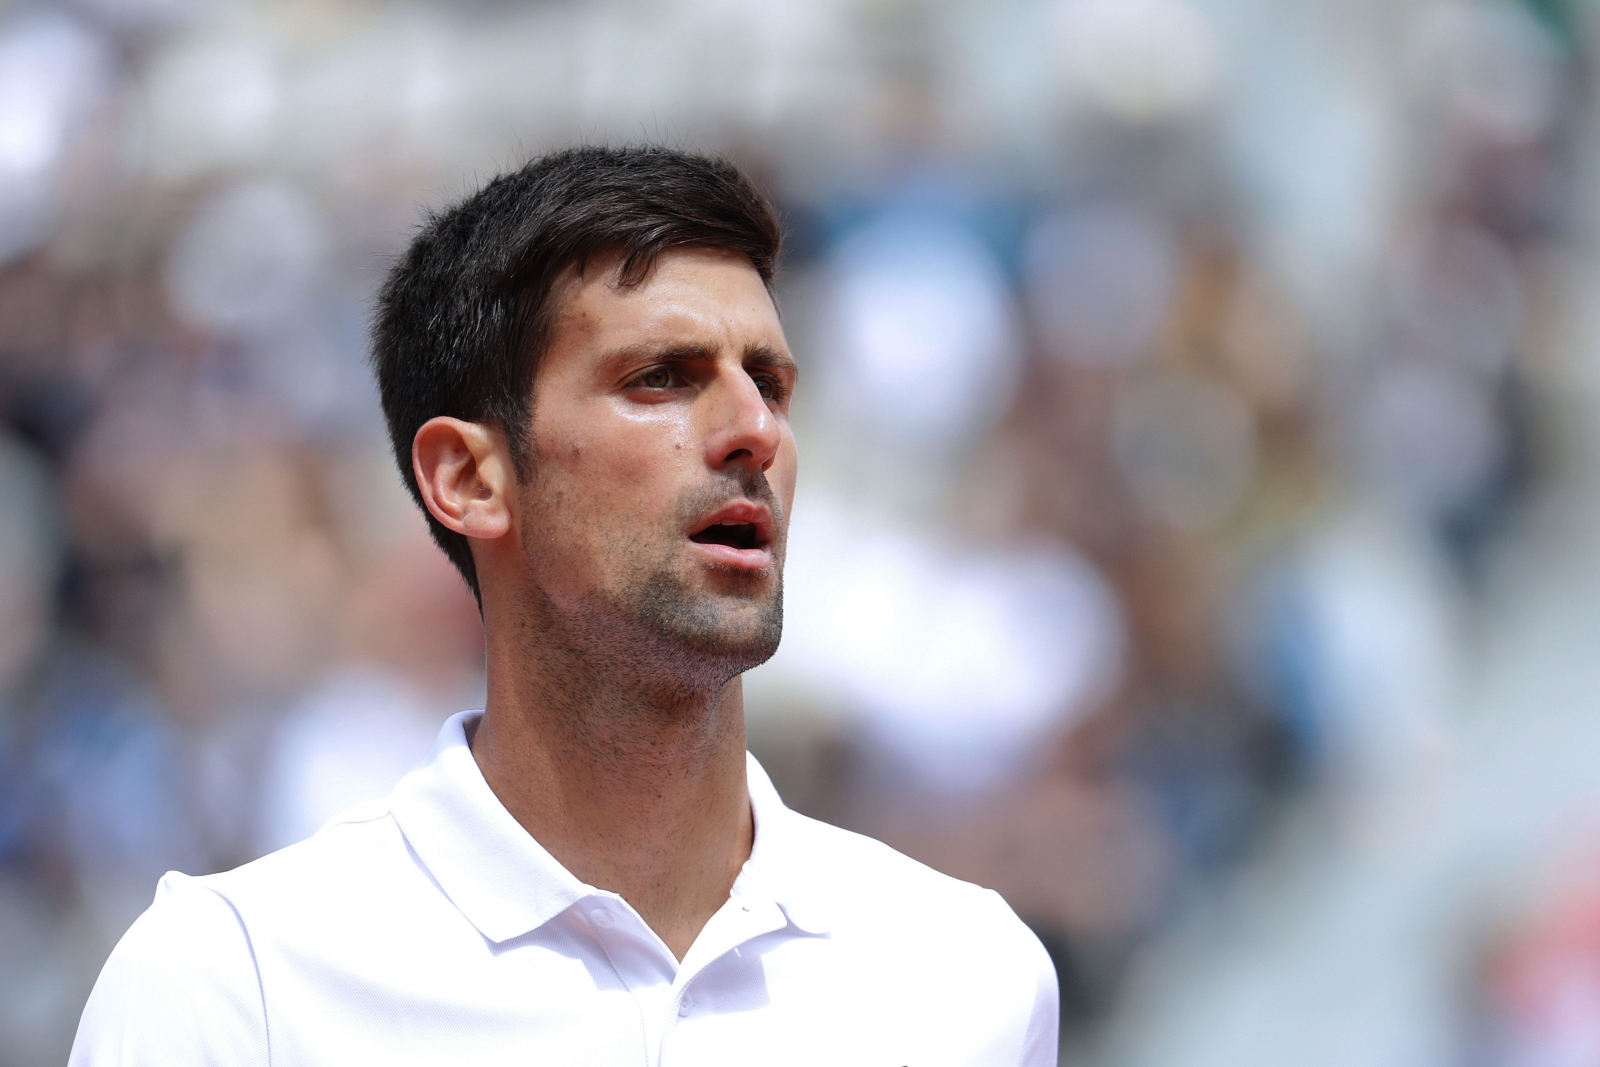 Djokovic out of French Open, Dominic Thiem to face Nadal in semis